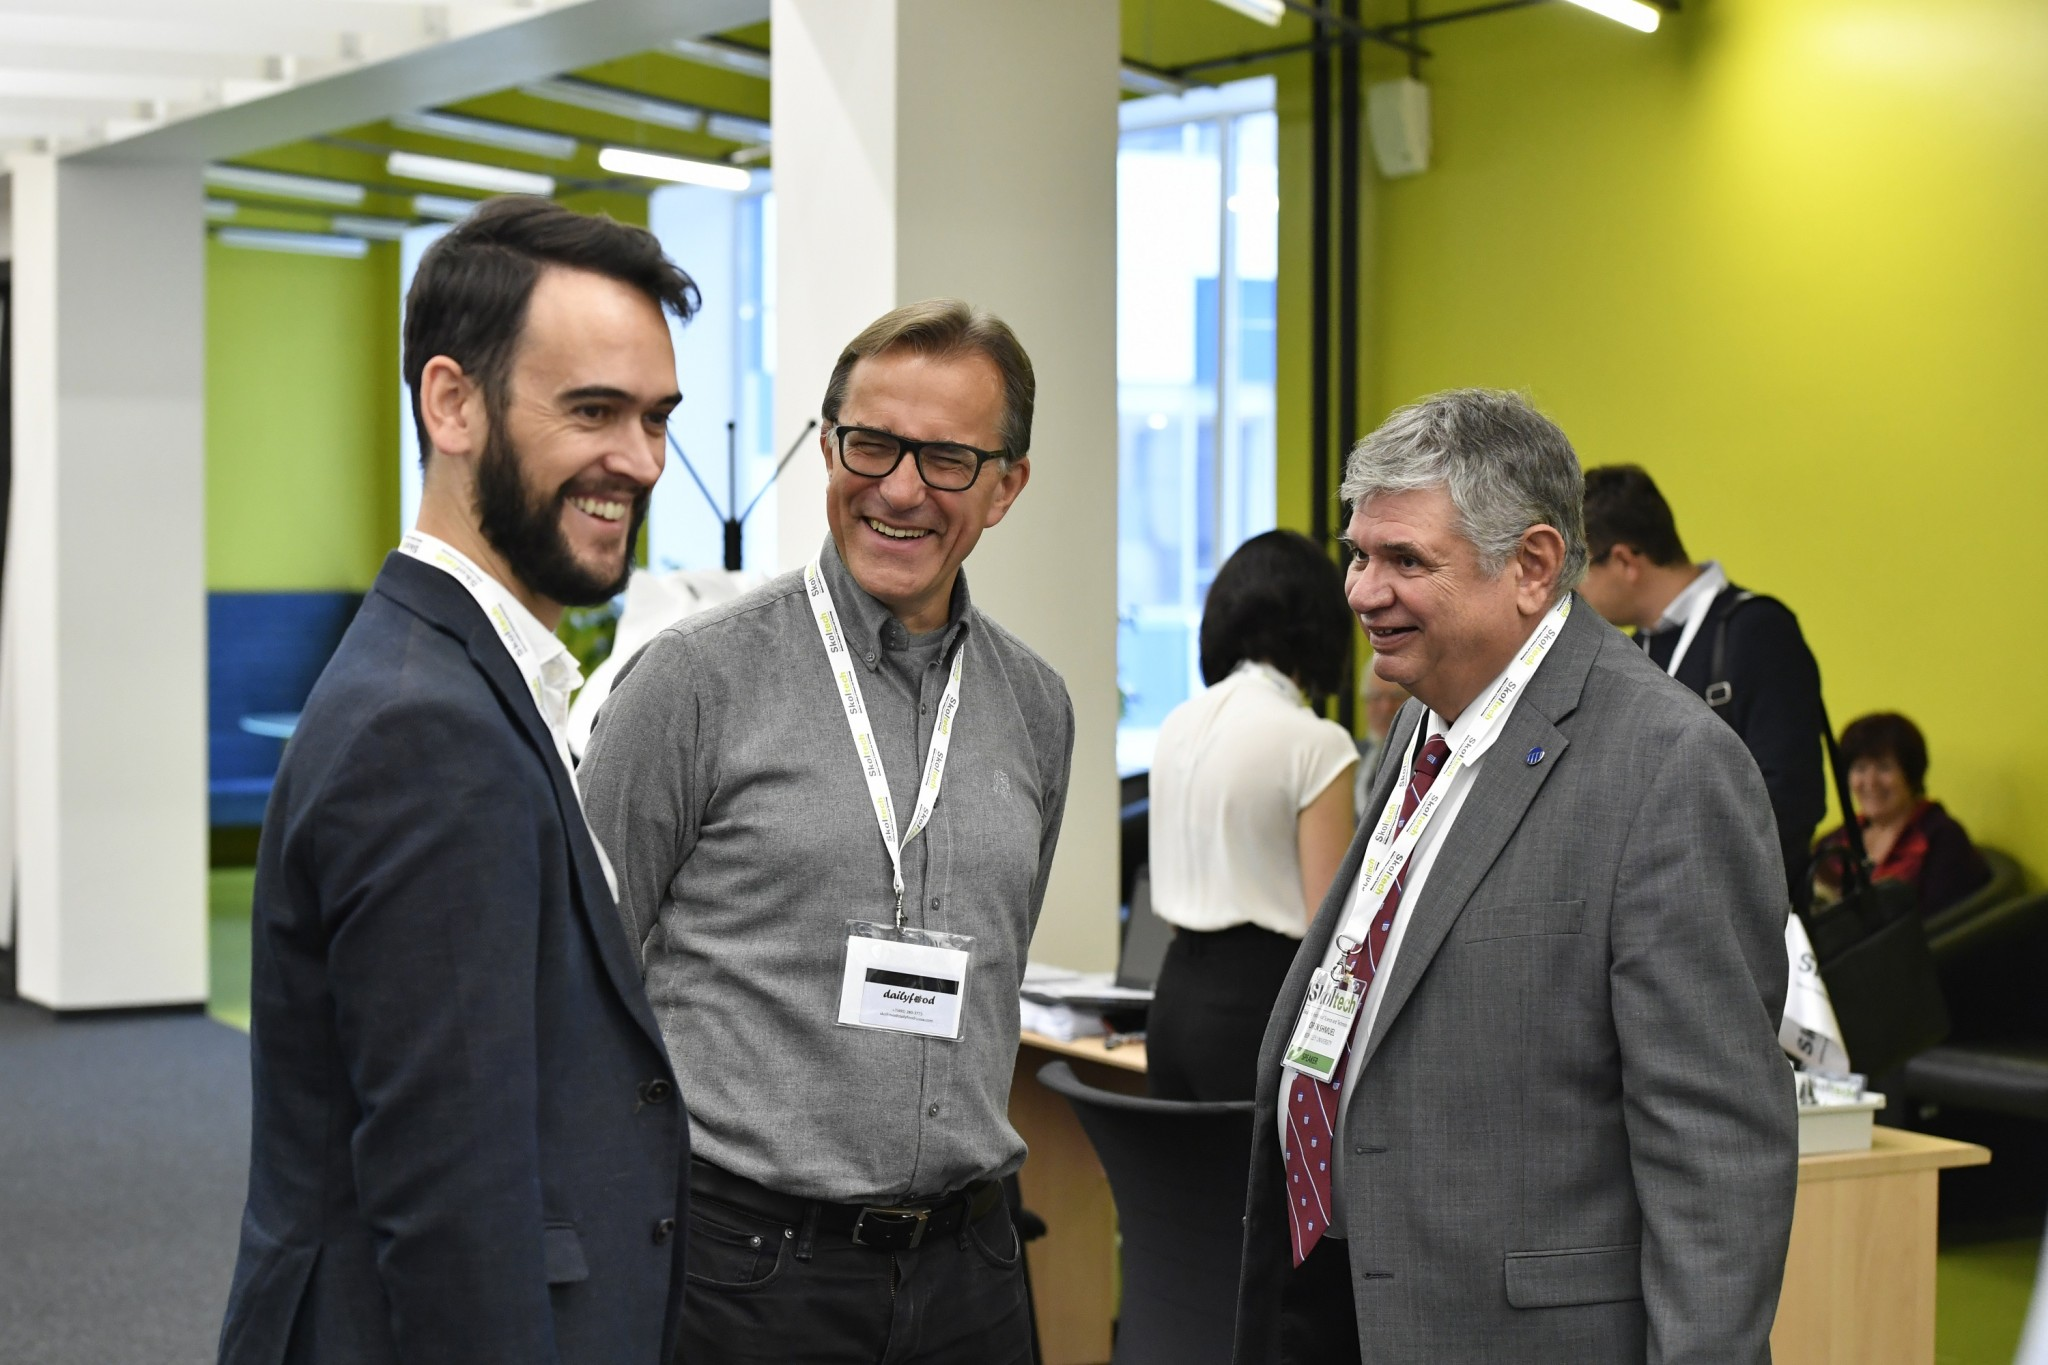 Professors David Pozo and Janusz Bialek (from left) of Skoltech and Professor Shmuel Oren of UC Berkeley (right) share a laugh. Photo: Skoltech.